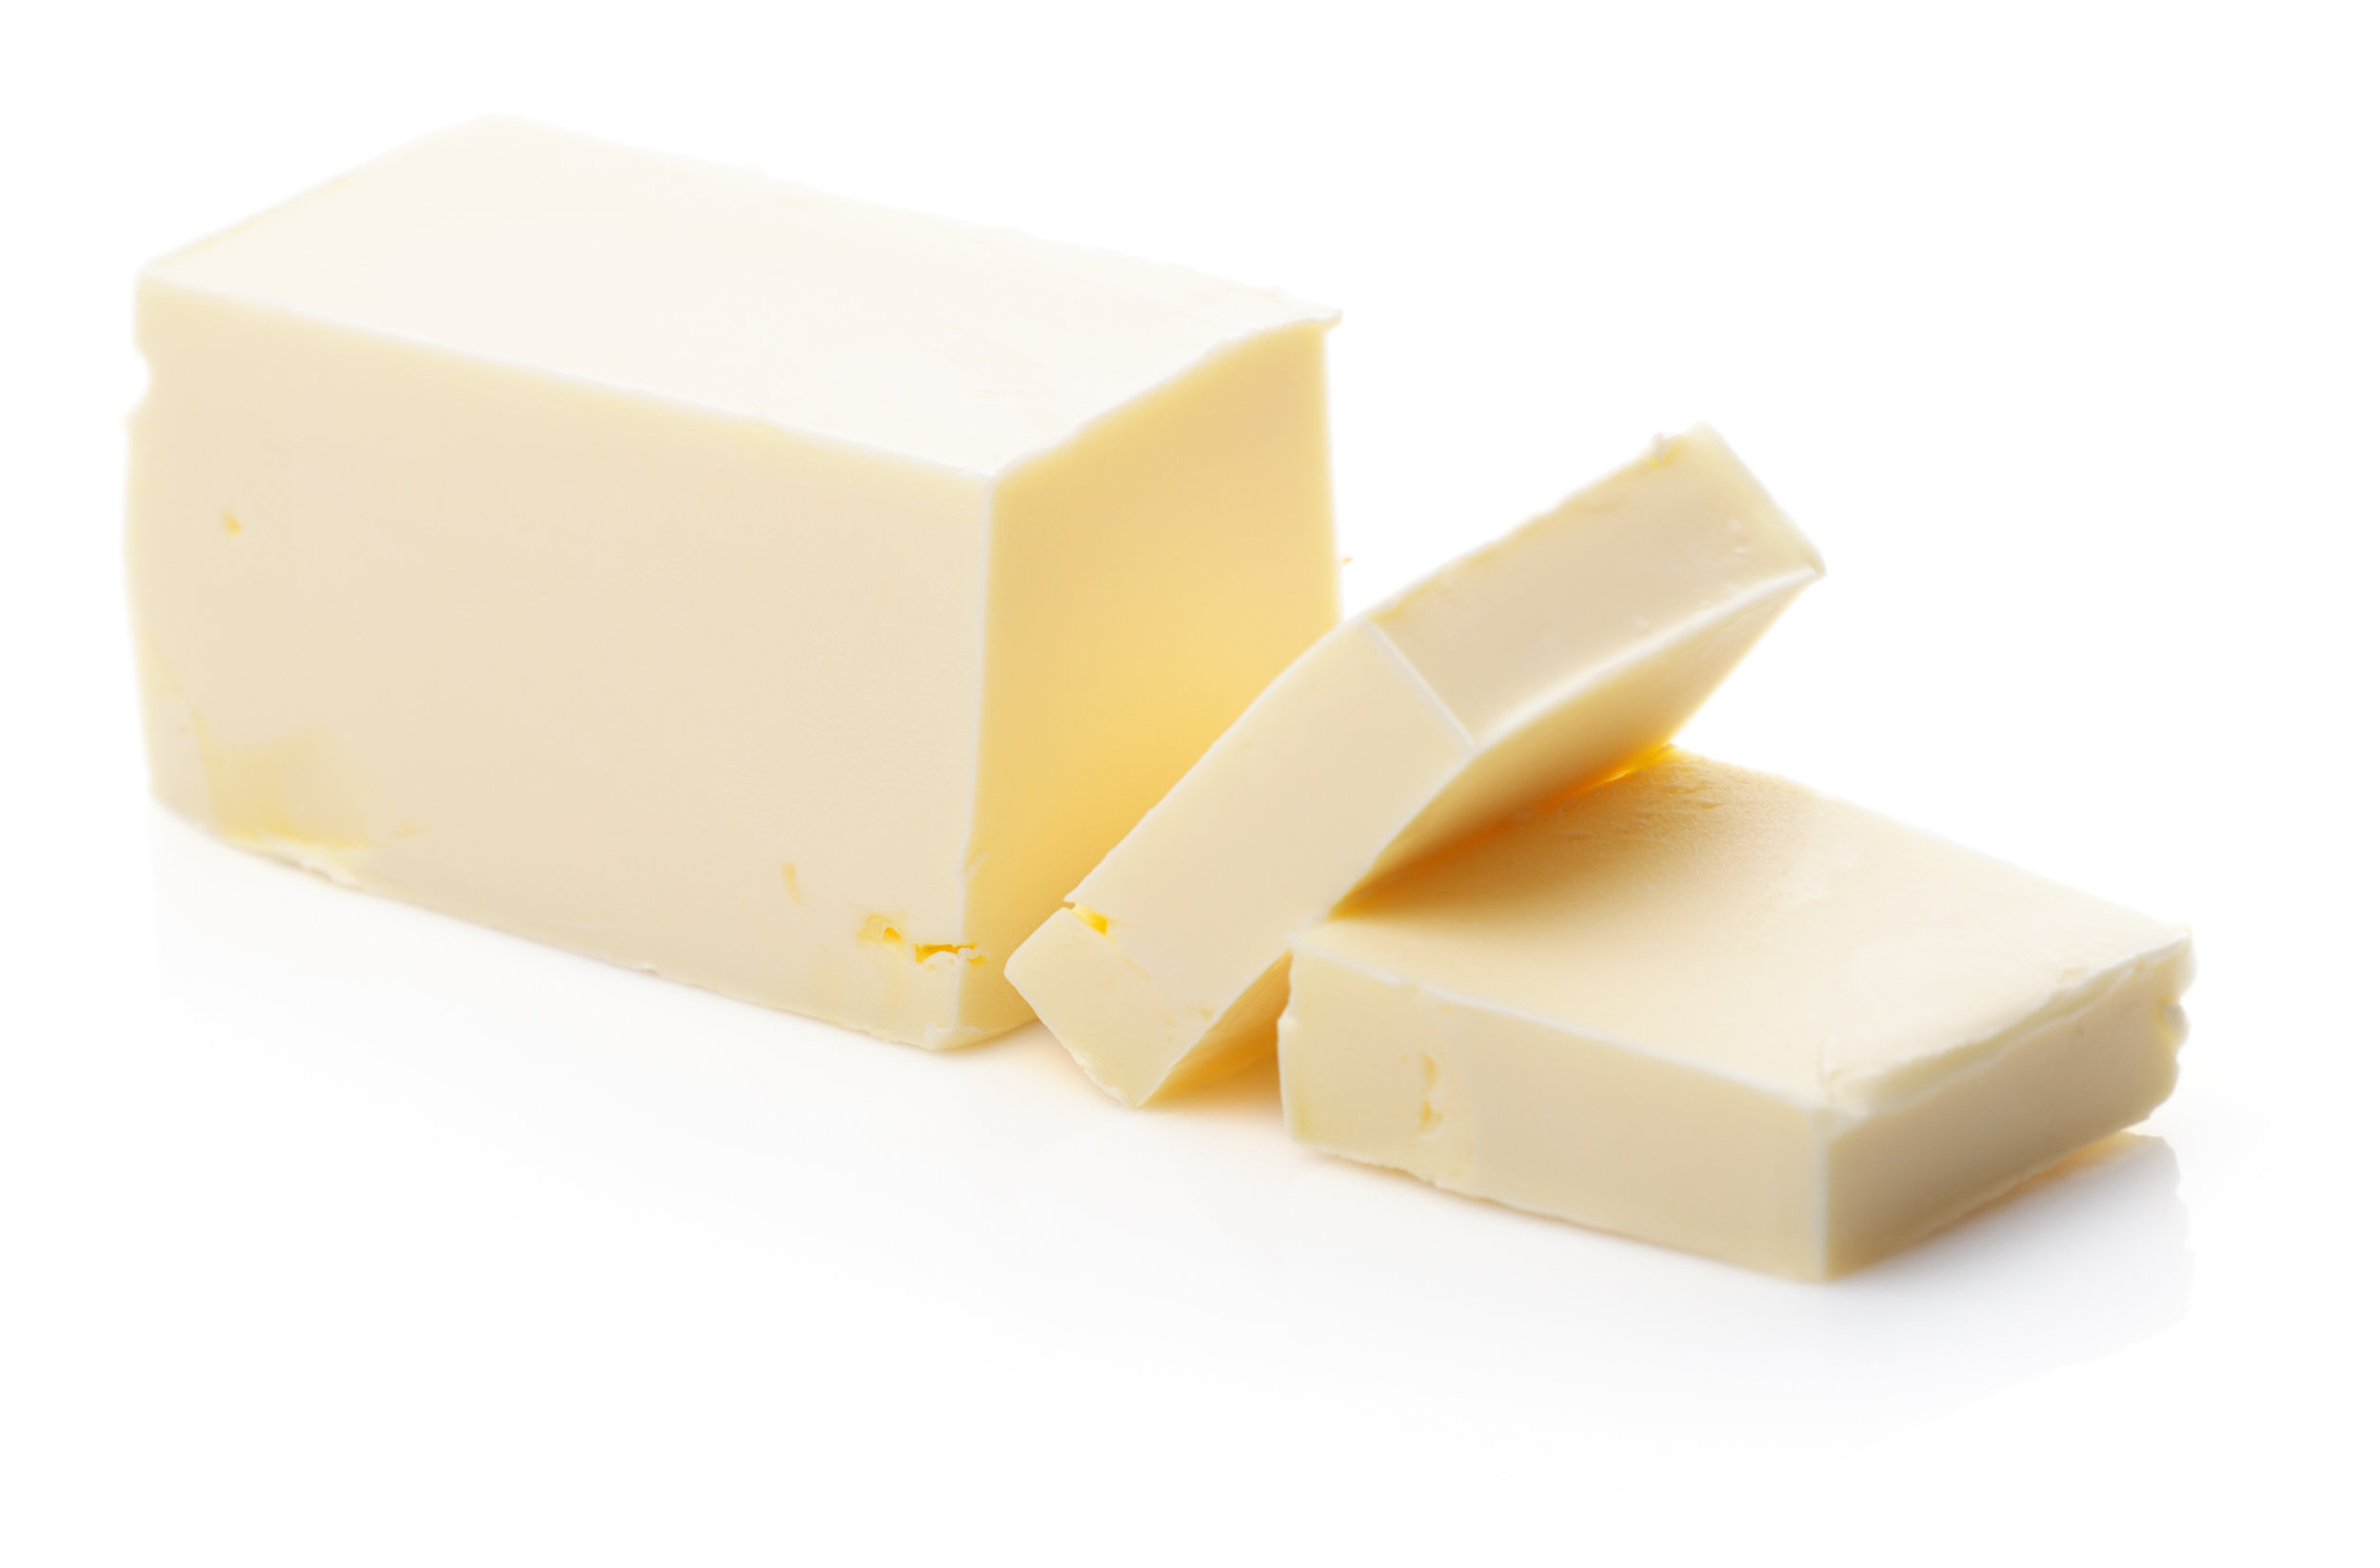 Butter. The cholesterol in butter helps regenerate myelin.